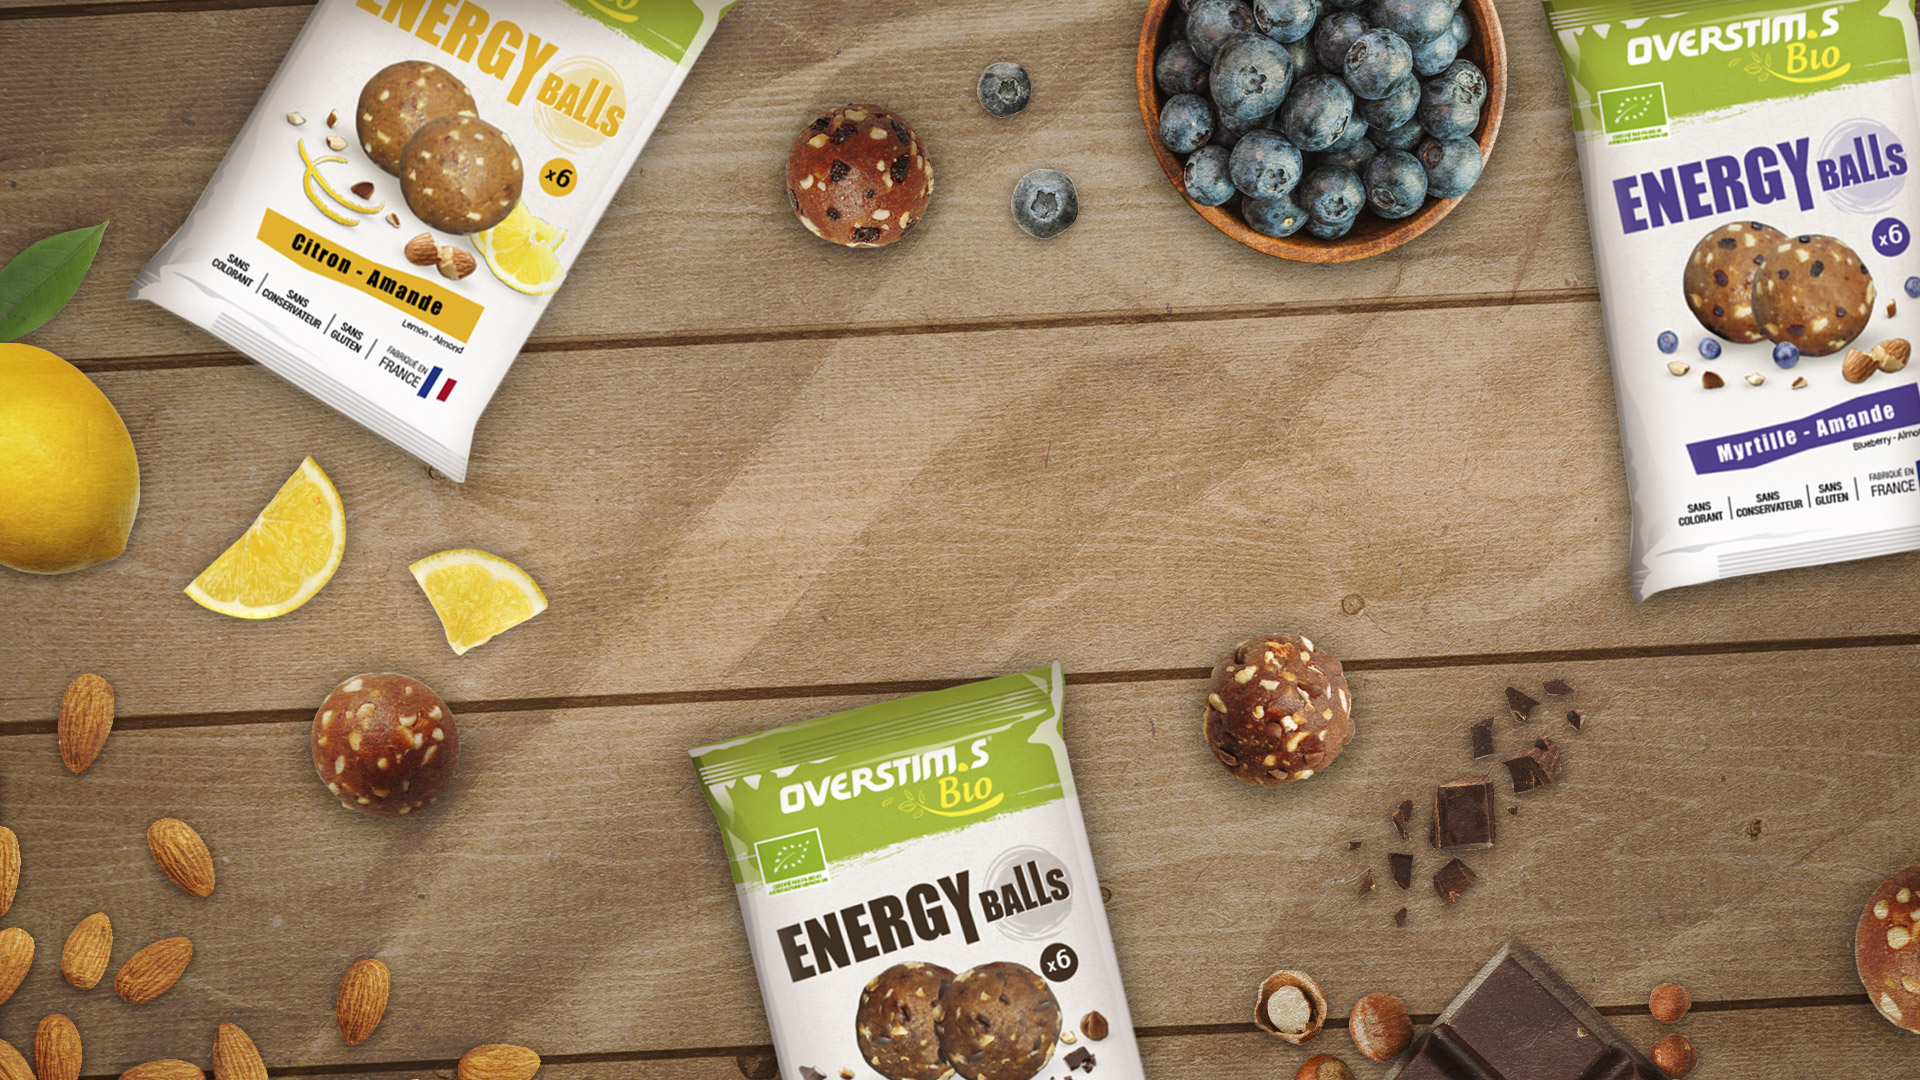 Introducing our organic Energy balls - Healthy and tasty snacks | OVERSTIM.s